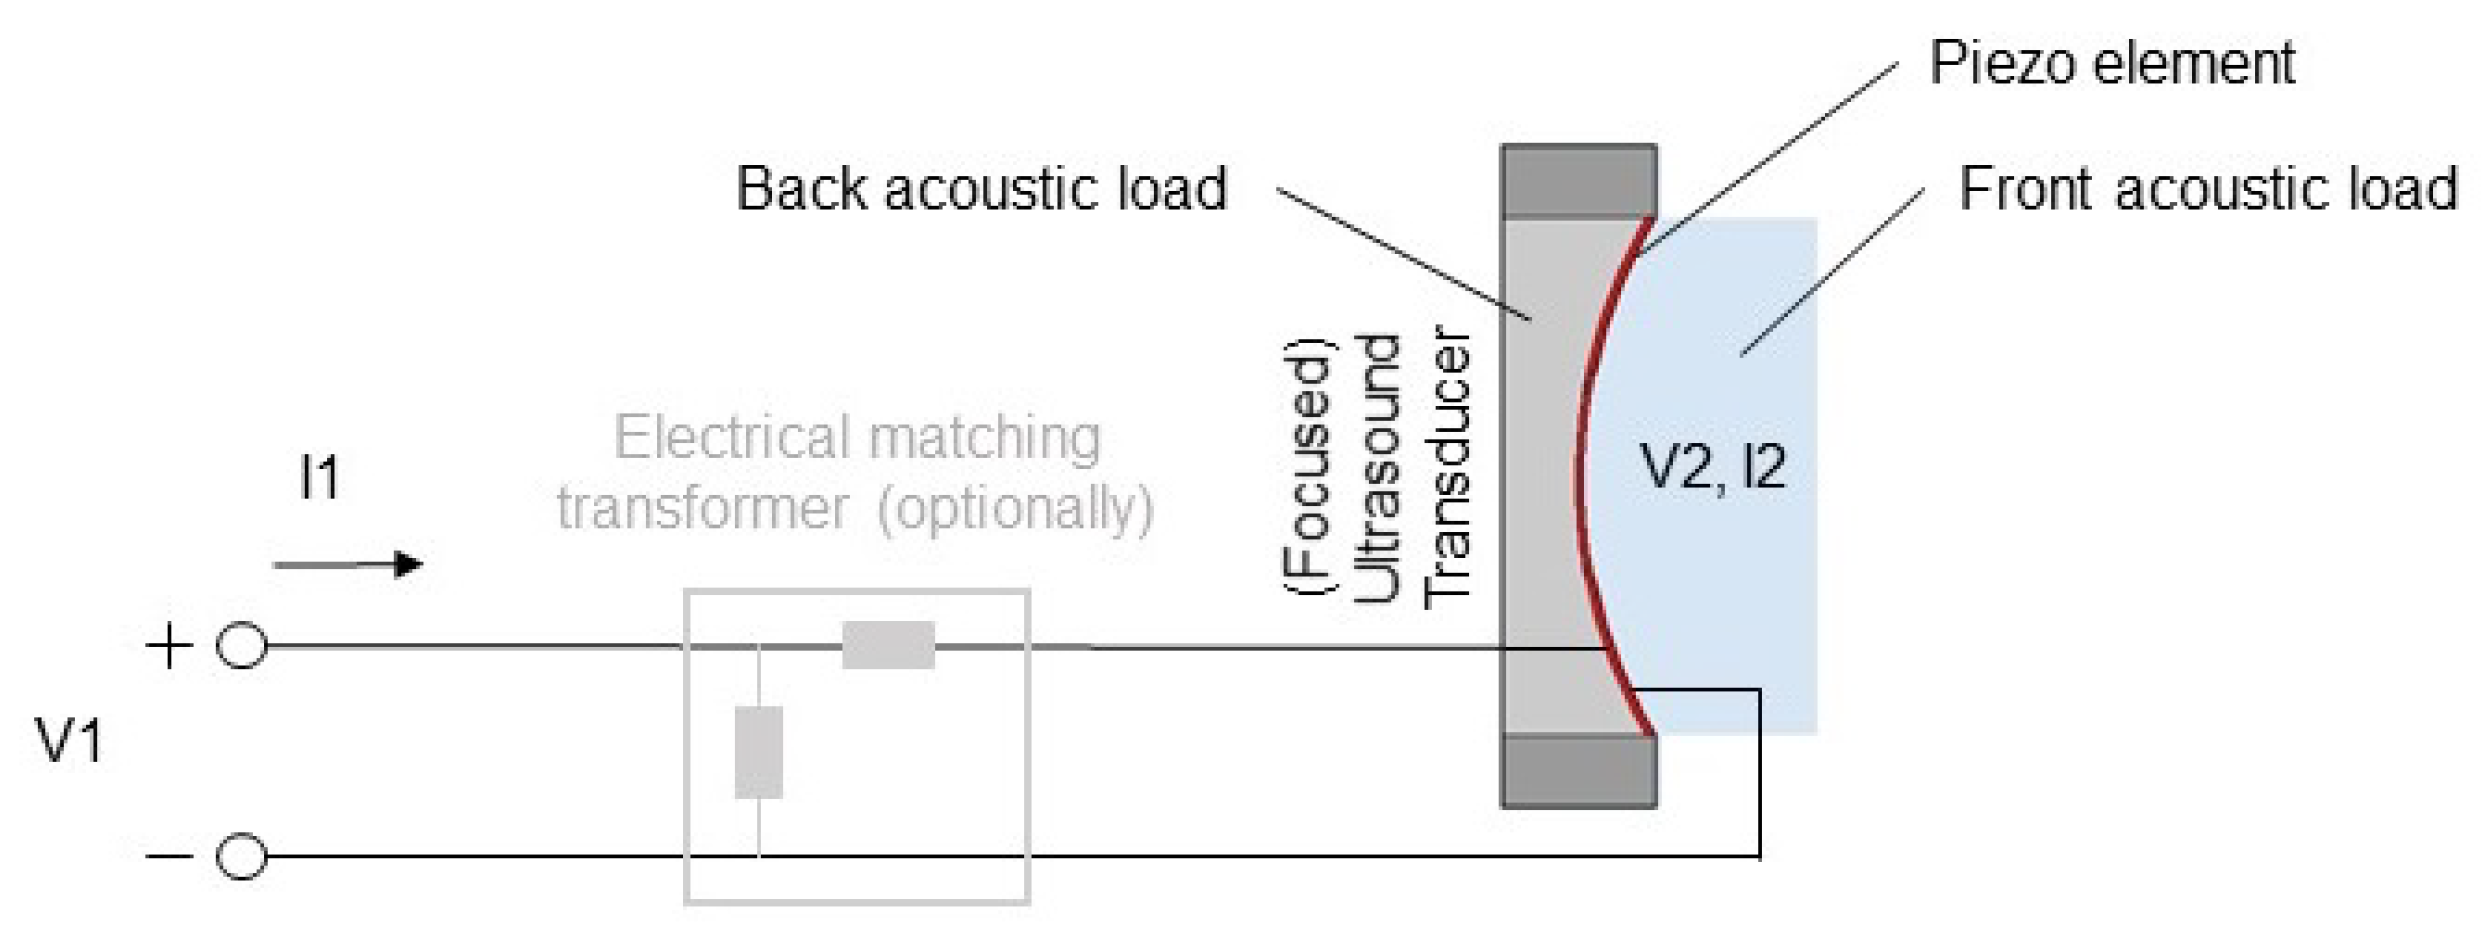 decorative wall plates can short circuit electrical.htm acoustics free full text estimation of acoustic power output  estimation of acoustic power output